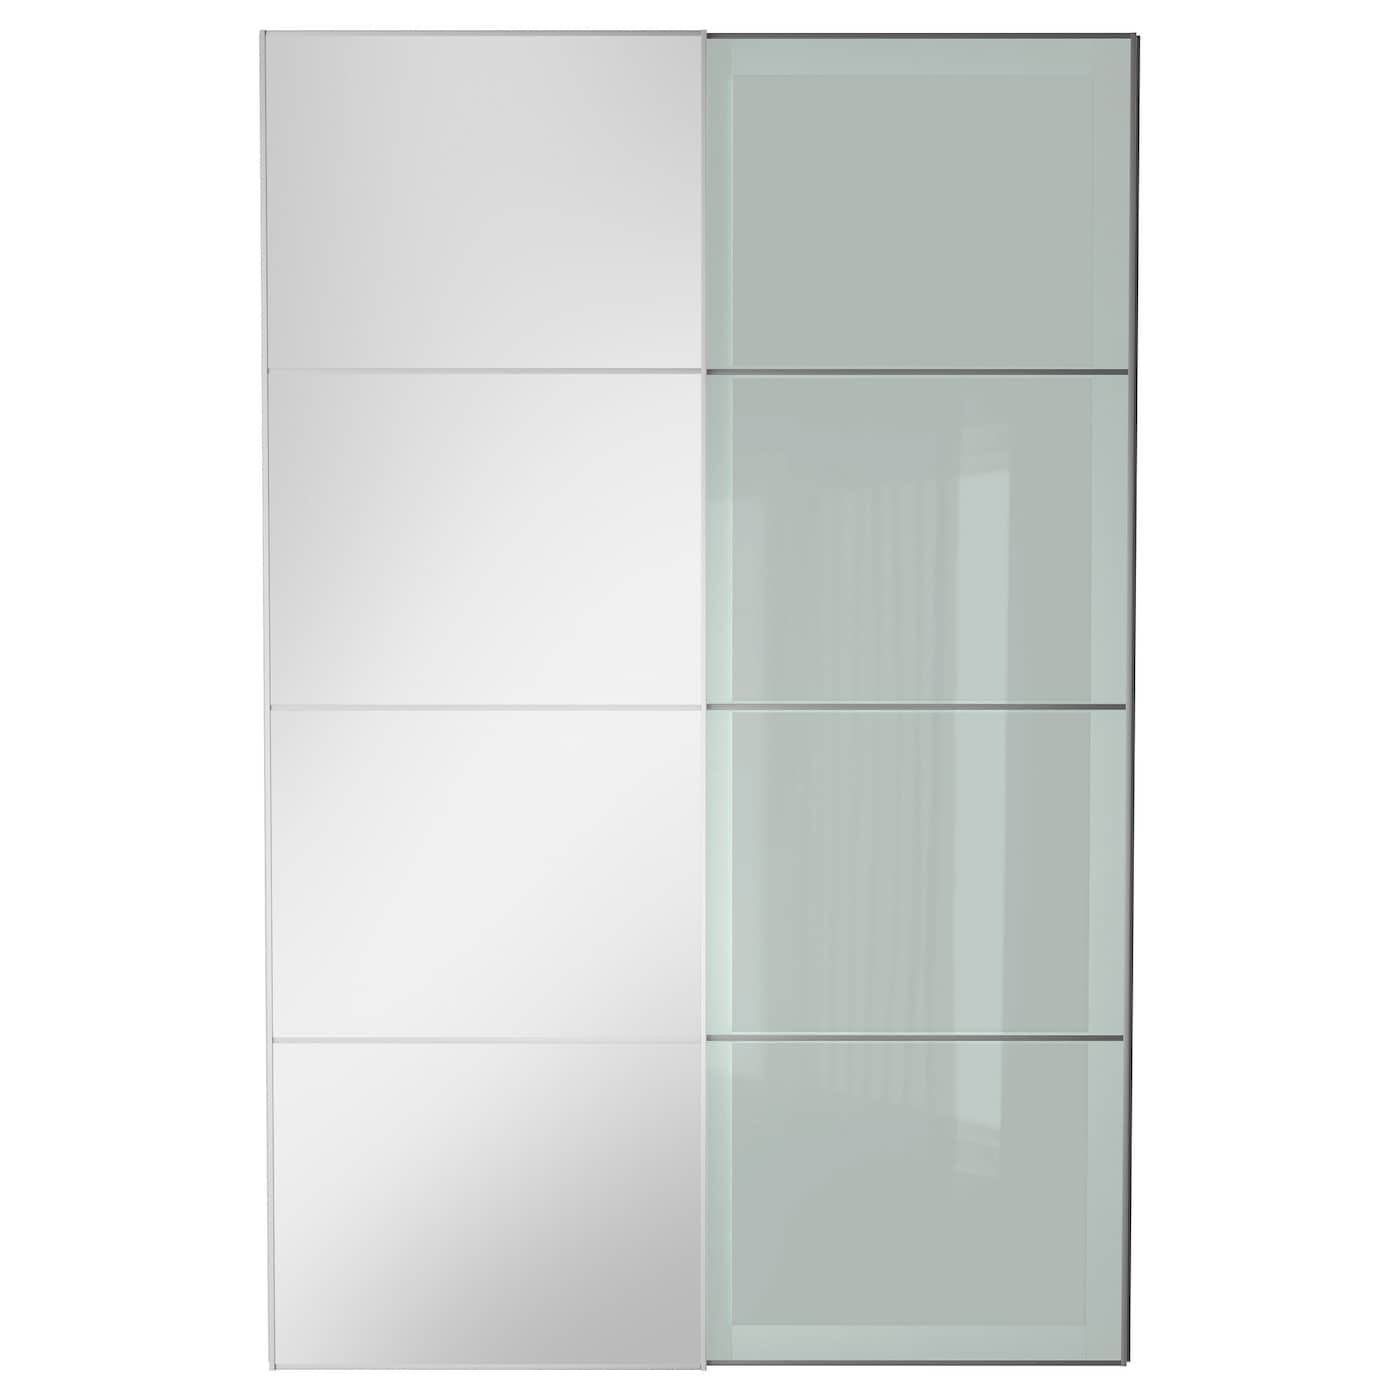 auli sekken pair of sliding doors mirror glass frosted. Black Bedroom Furniture Sets. Home Design Ideas